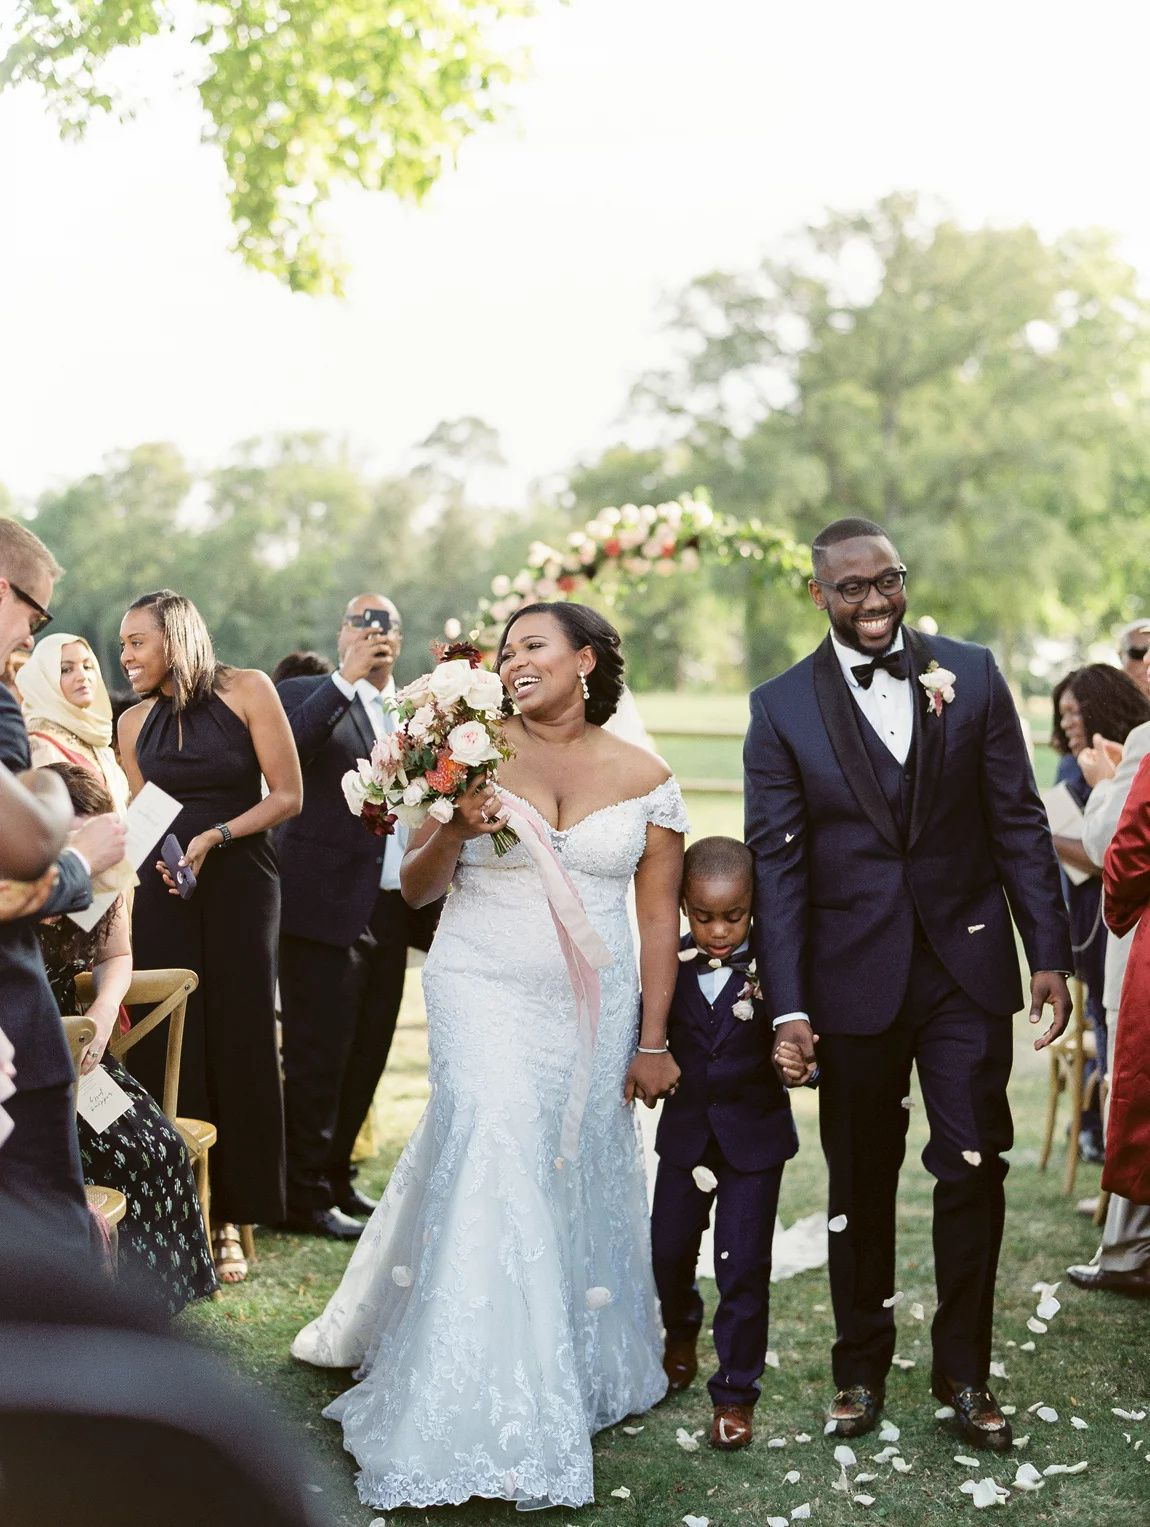 How To Make Your Ceremony Recessional Special In 2020 Wedding Recessional Groom Portrait Wedding